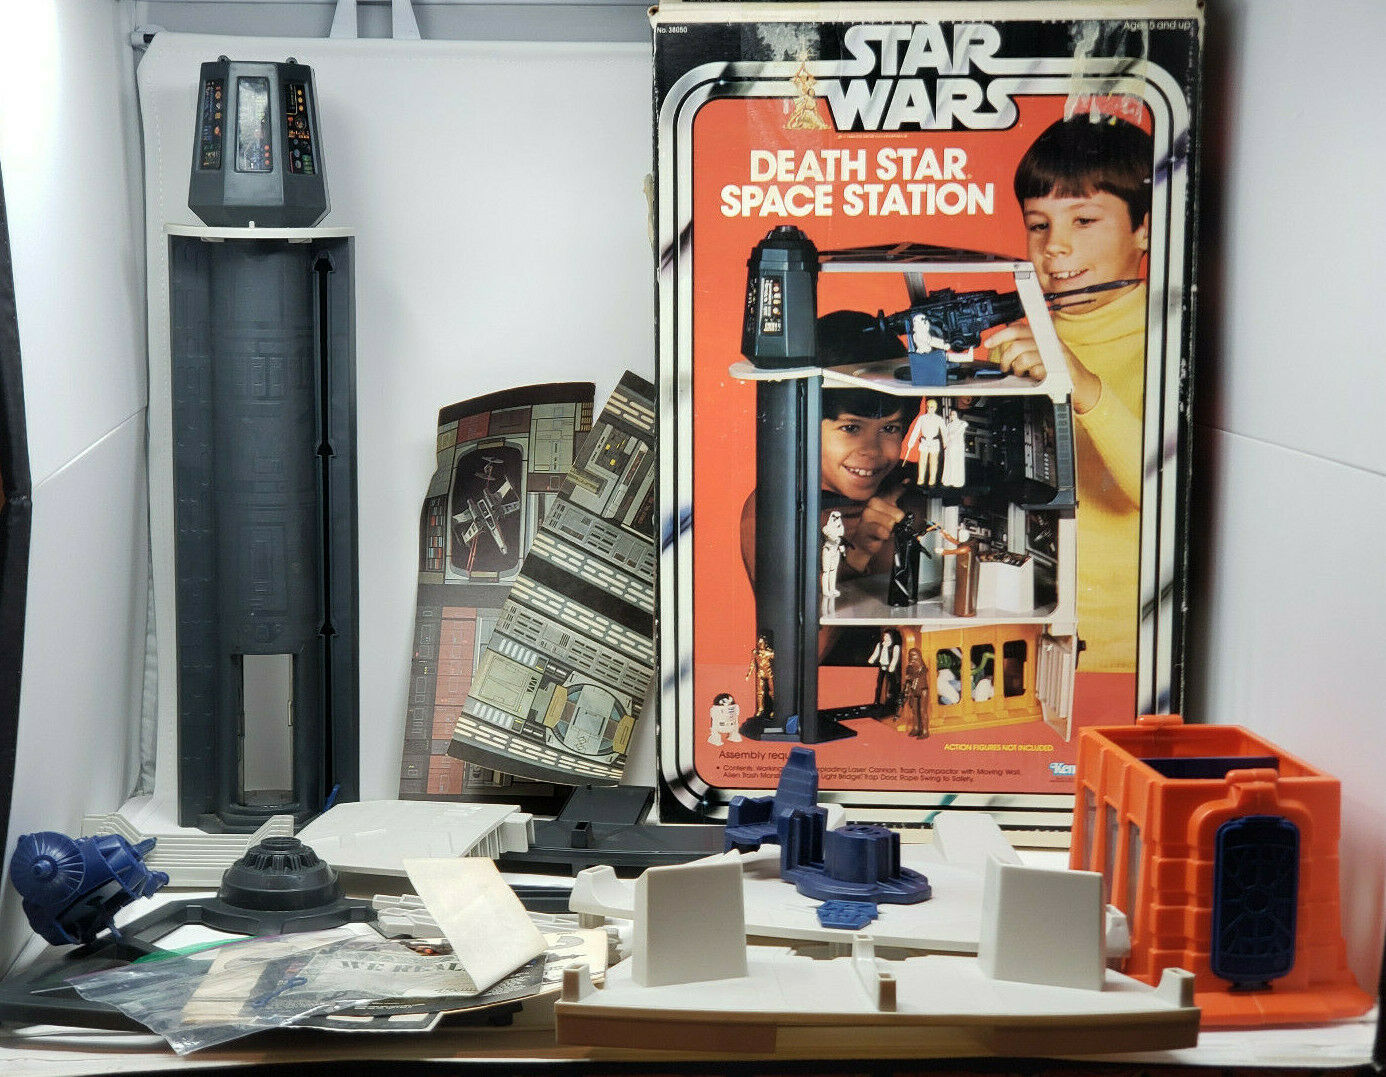 Classic Estrella Wars 1977 Death Planet Station Juego Kit with Caja and soga